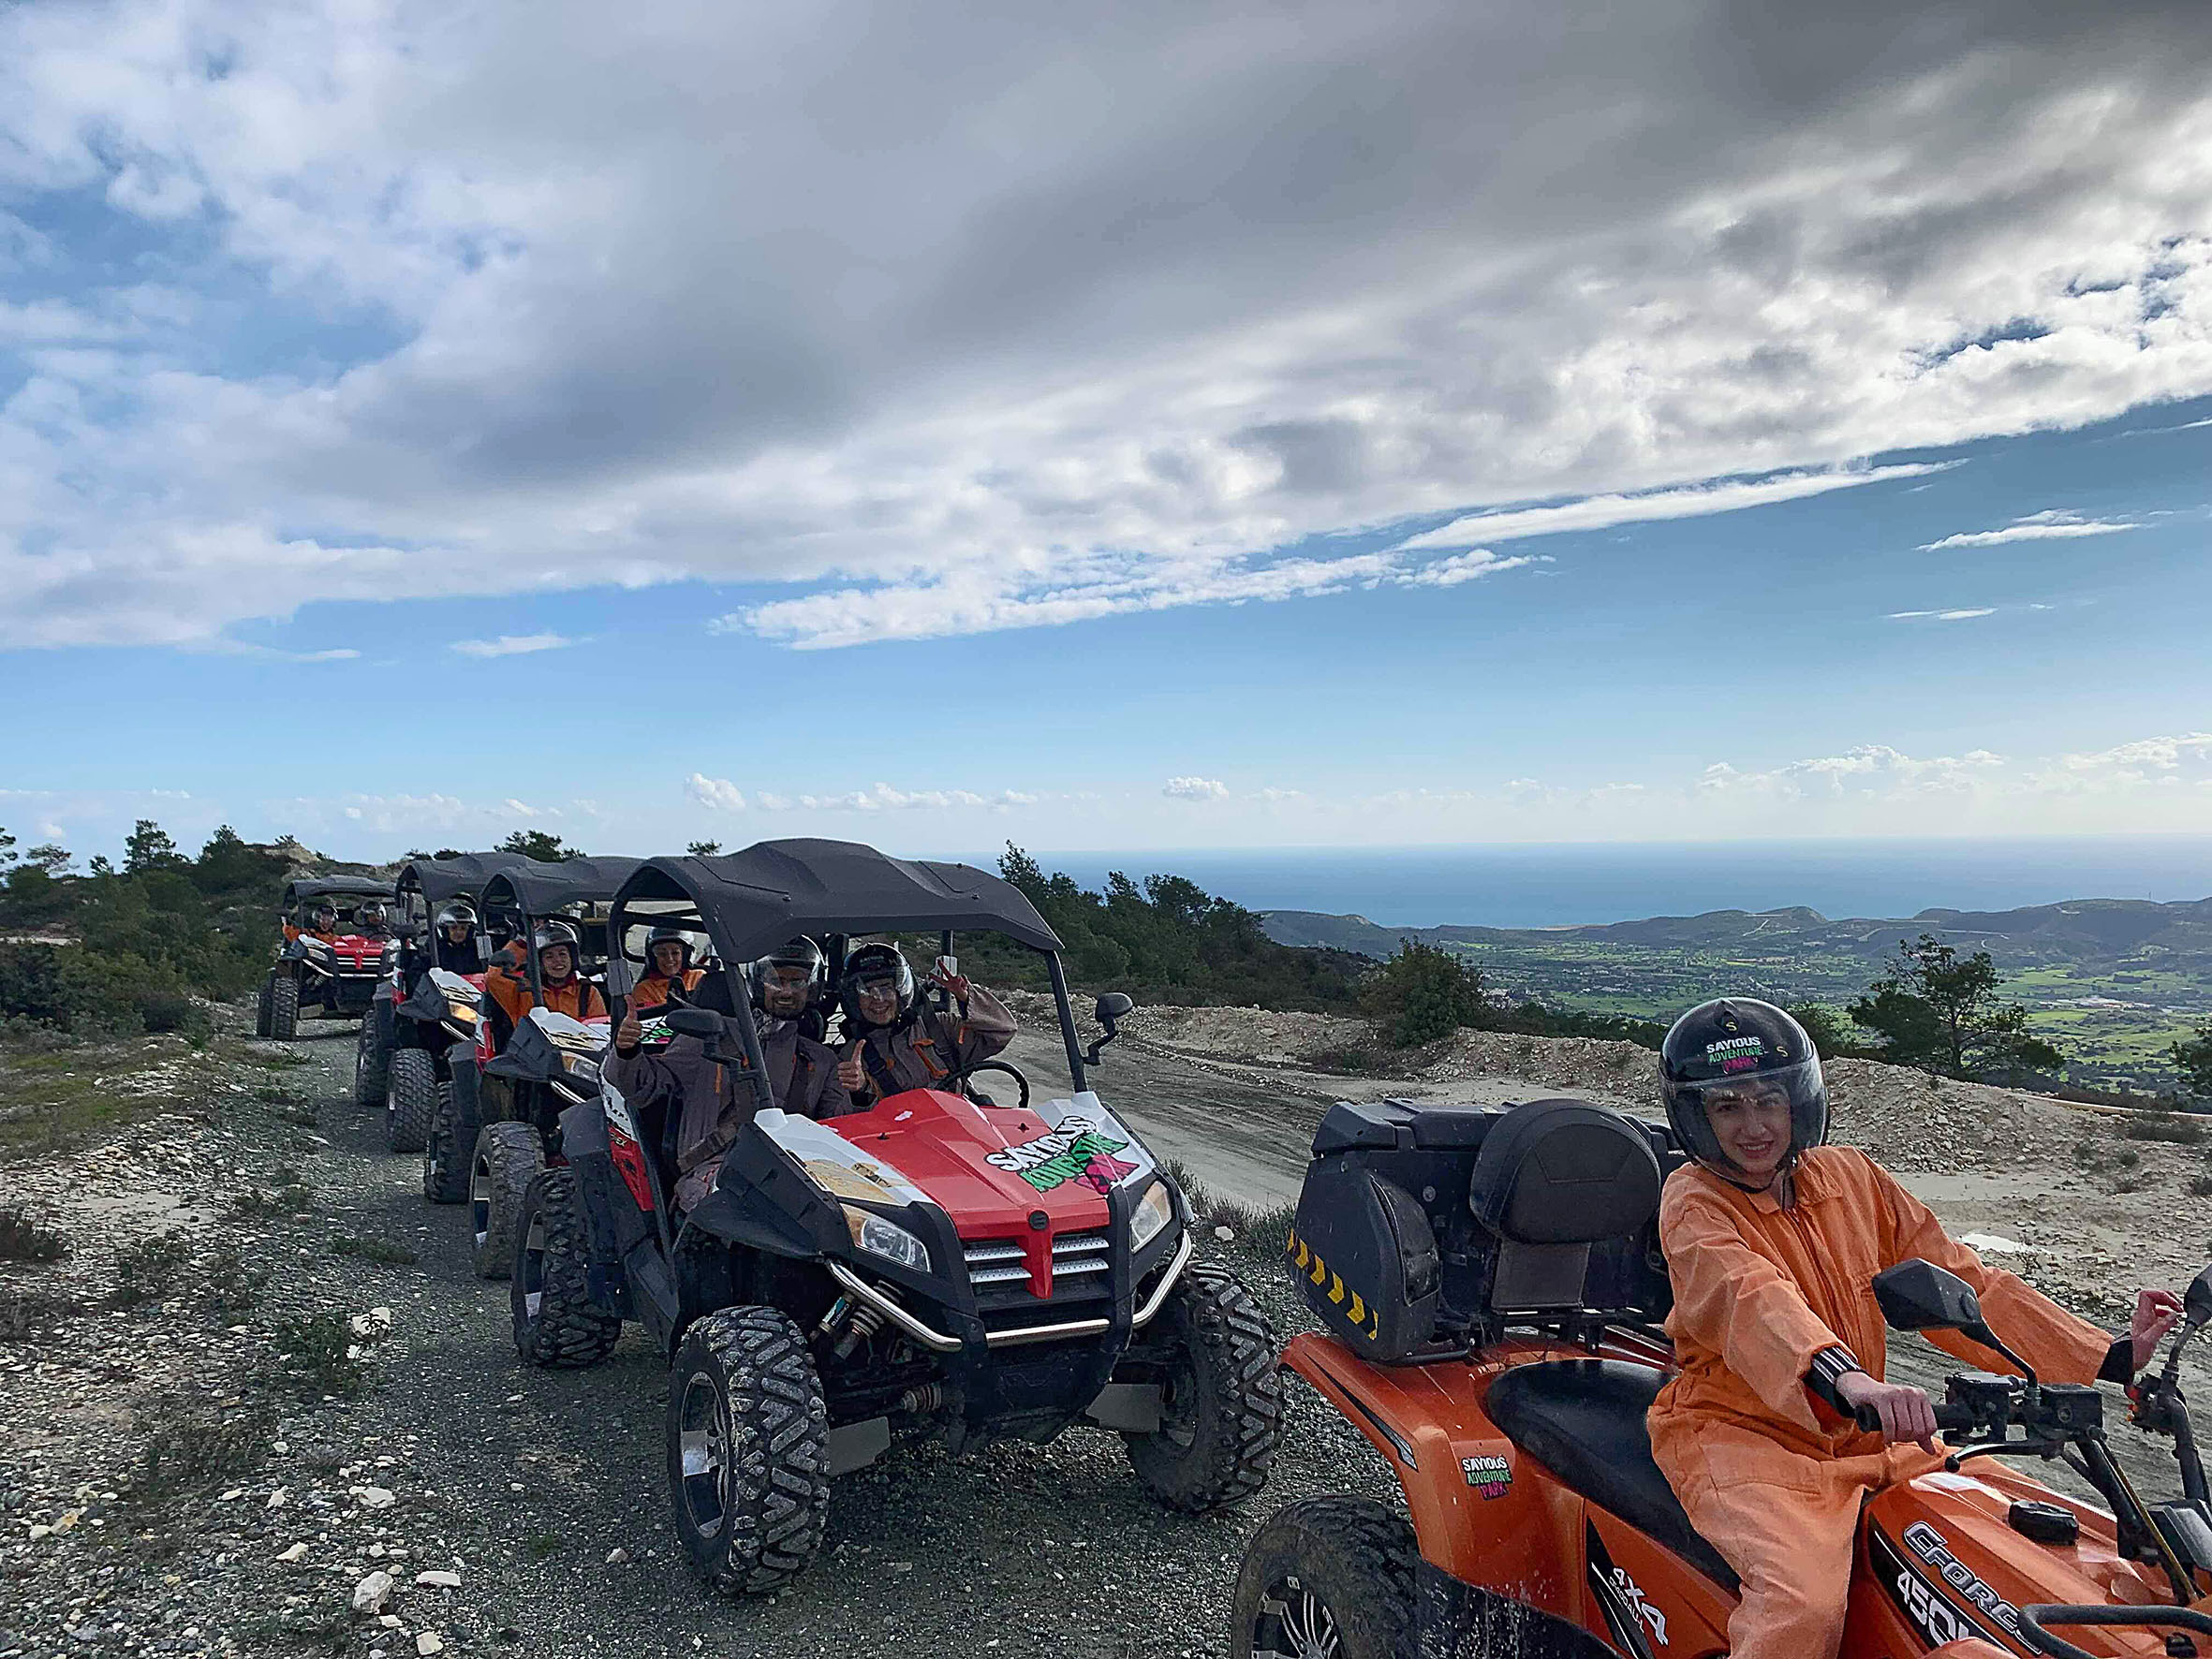 Off road buggy tour - 50 minutes